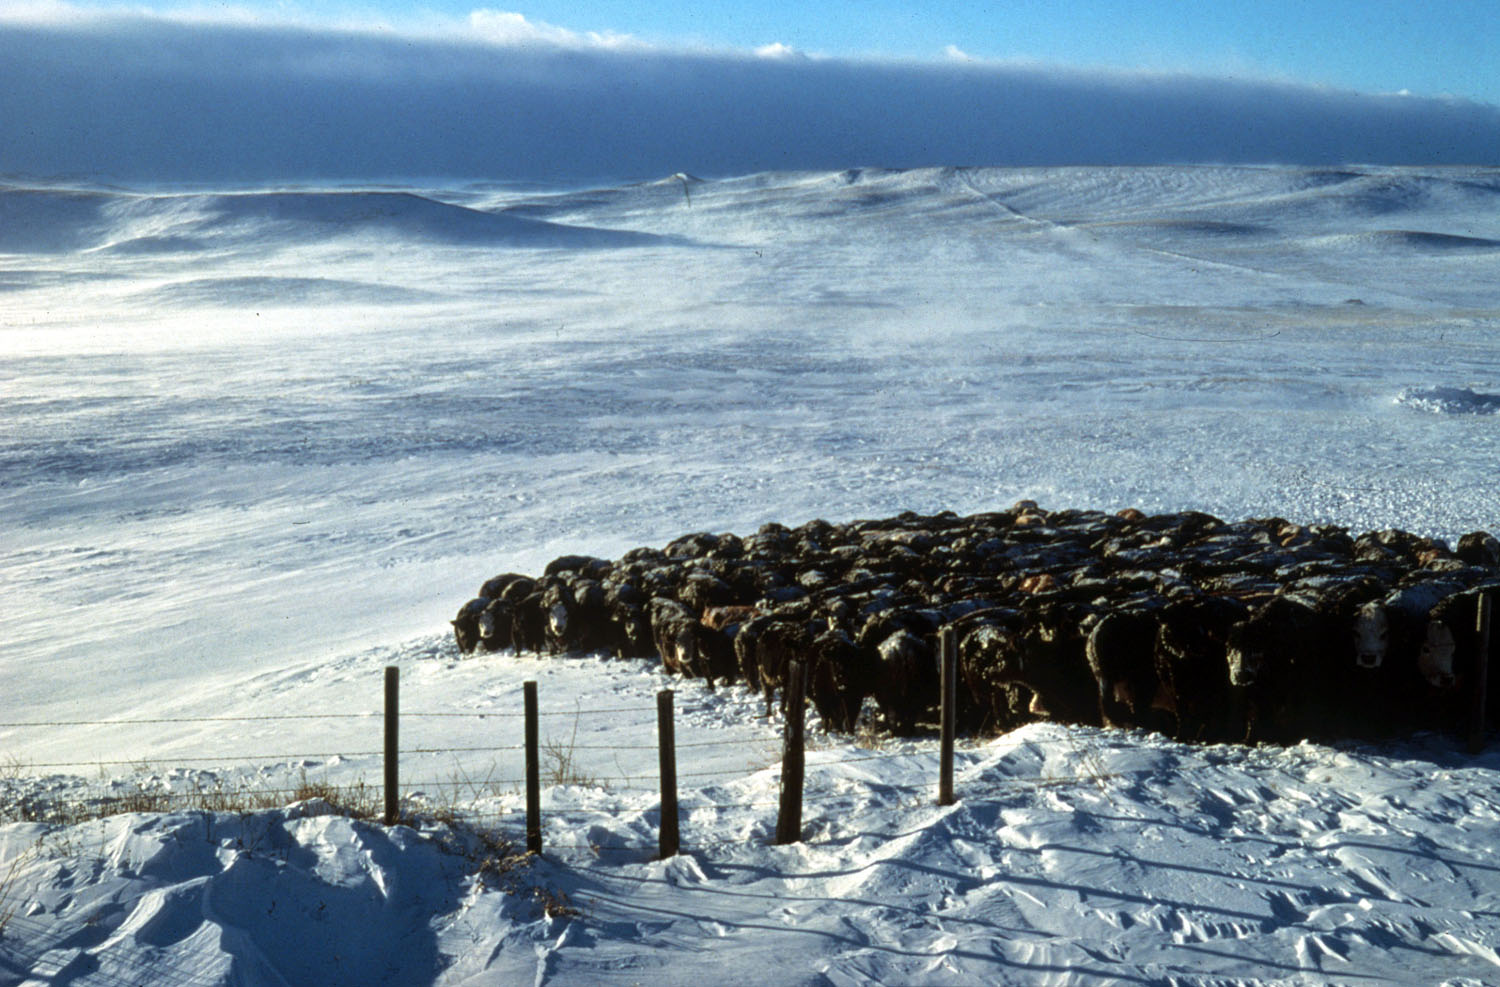 A head of cattle huddle together on the snow-covered, rolling hills on a bright, sunny, and cold winter day